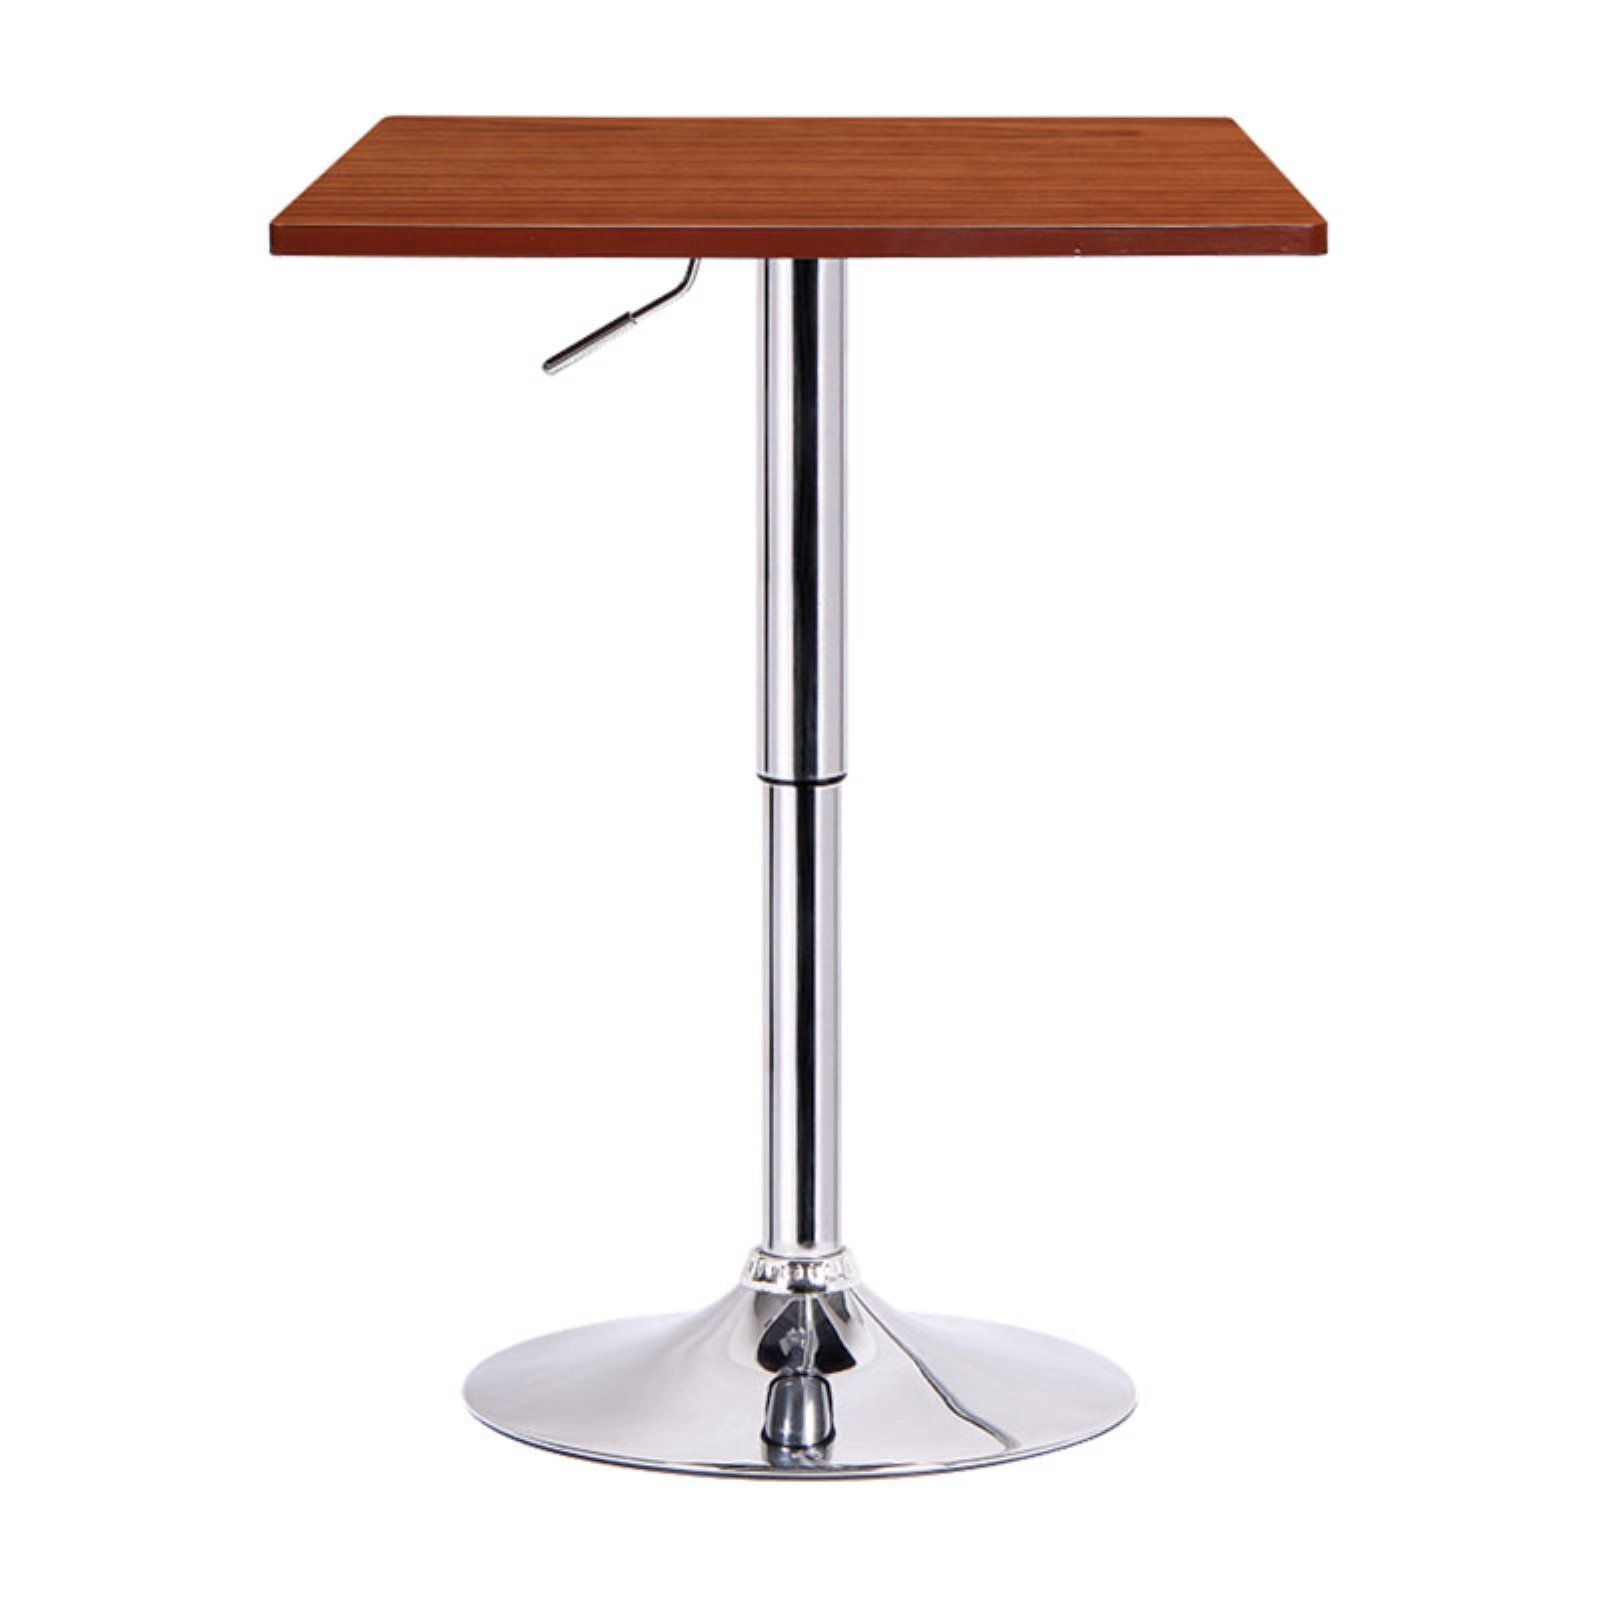 Boraam Luta Square Adjustable Height Pub Table, Multiple Colors by Boraam